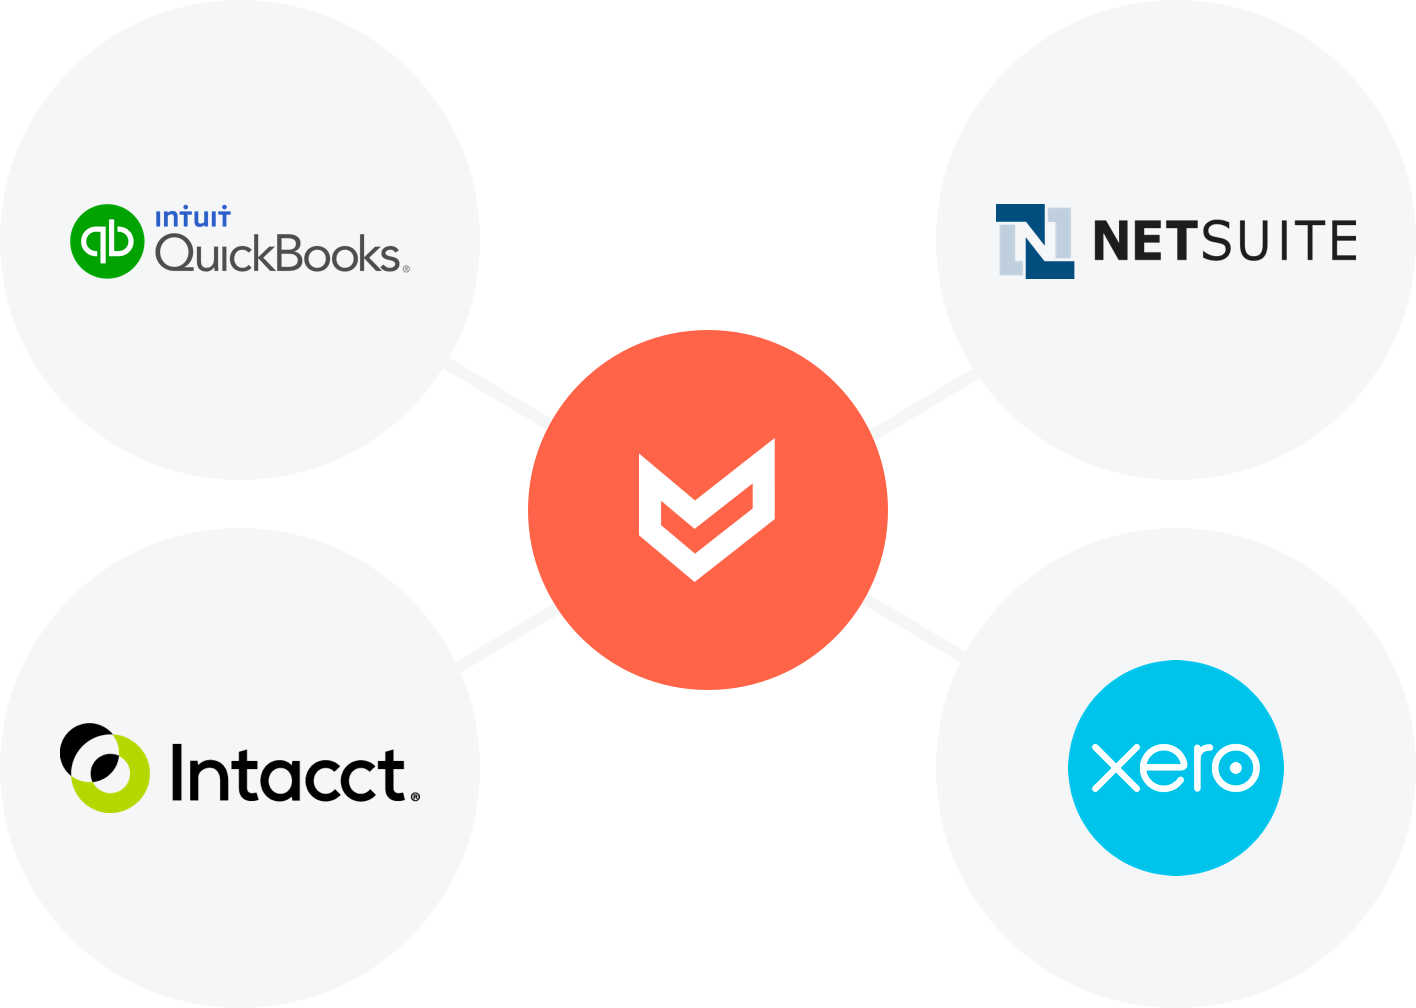 Airbase connected to the the four major general ledgers — Quickbooks, Xero, Intacct, and Netsuite